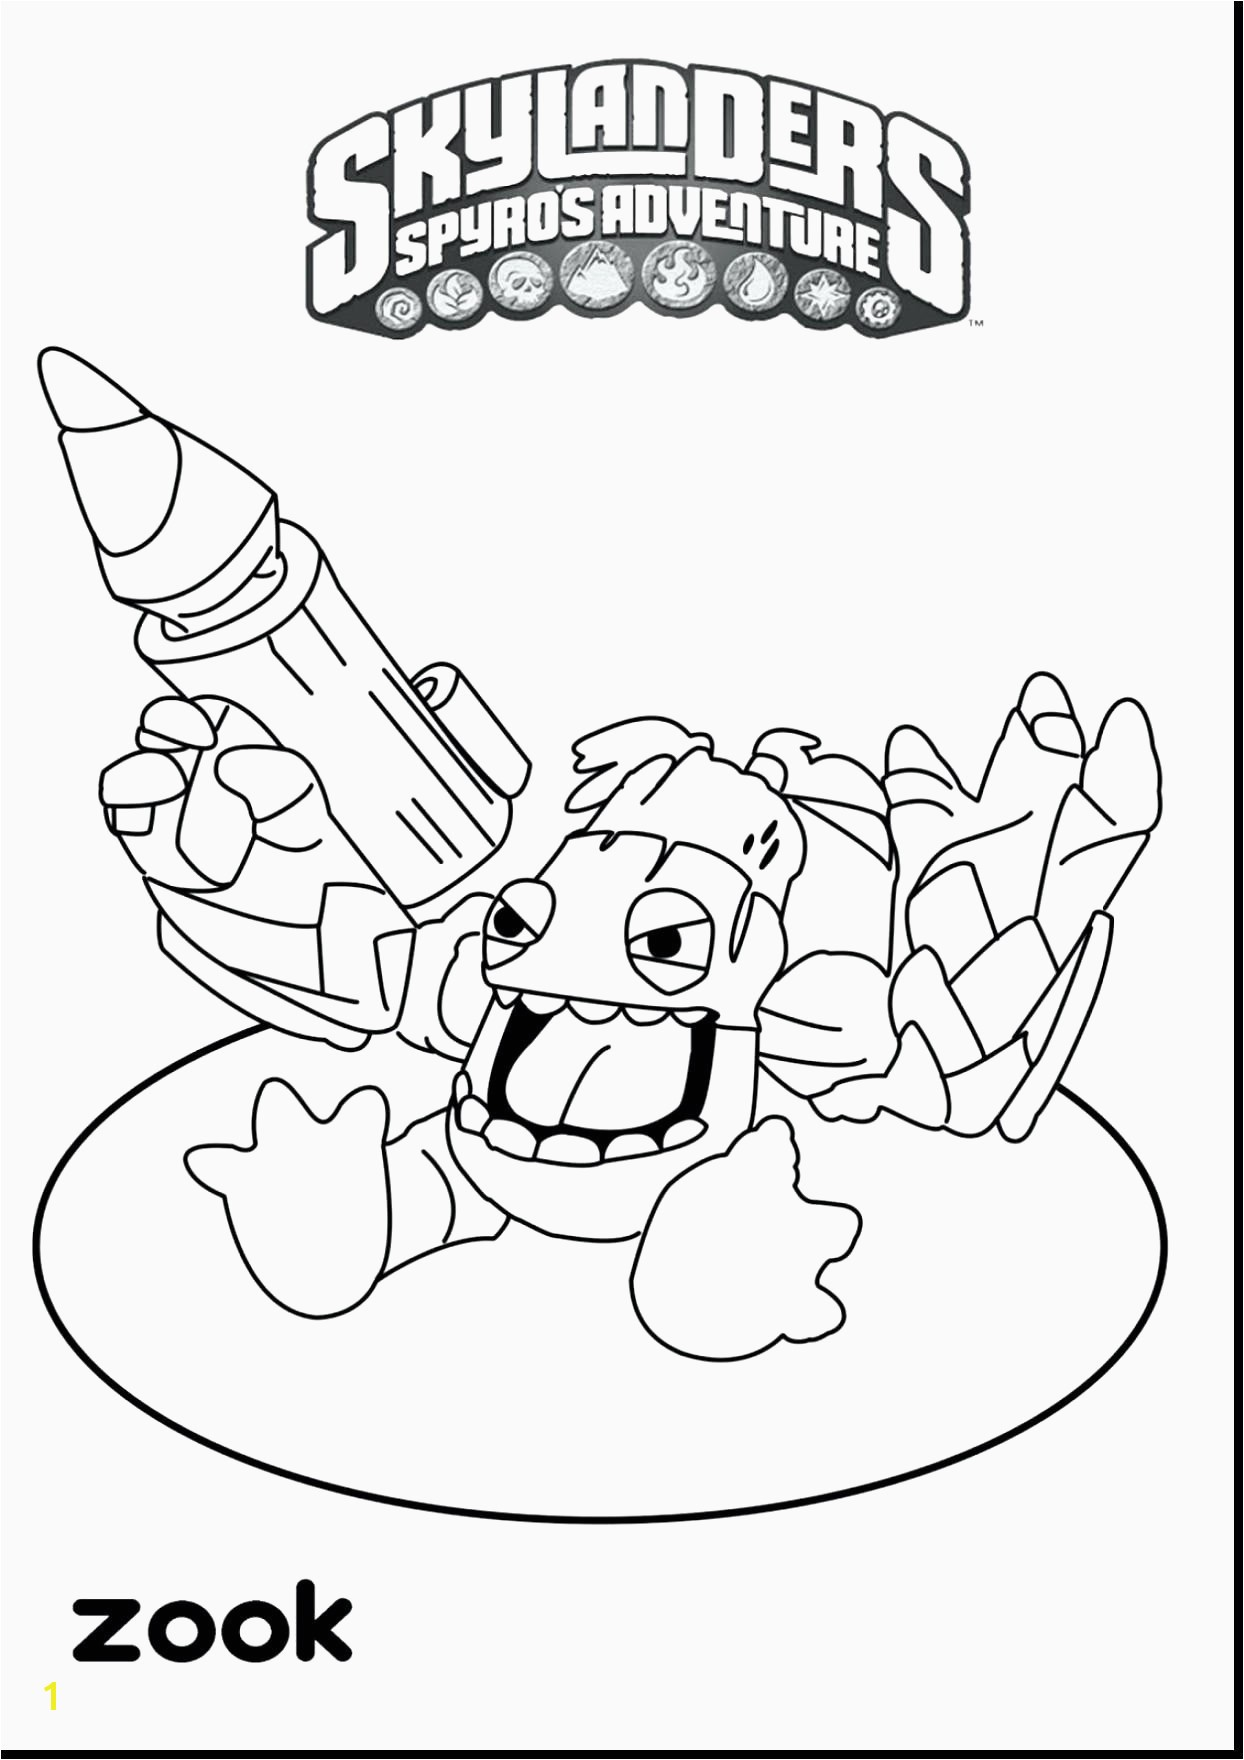 Us Constitution Coloring Pages Educational Coloring Pages for Kids Coloring Pages